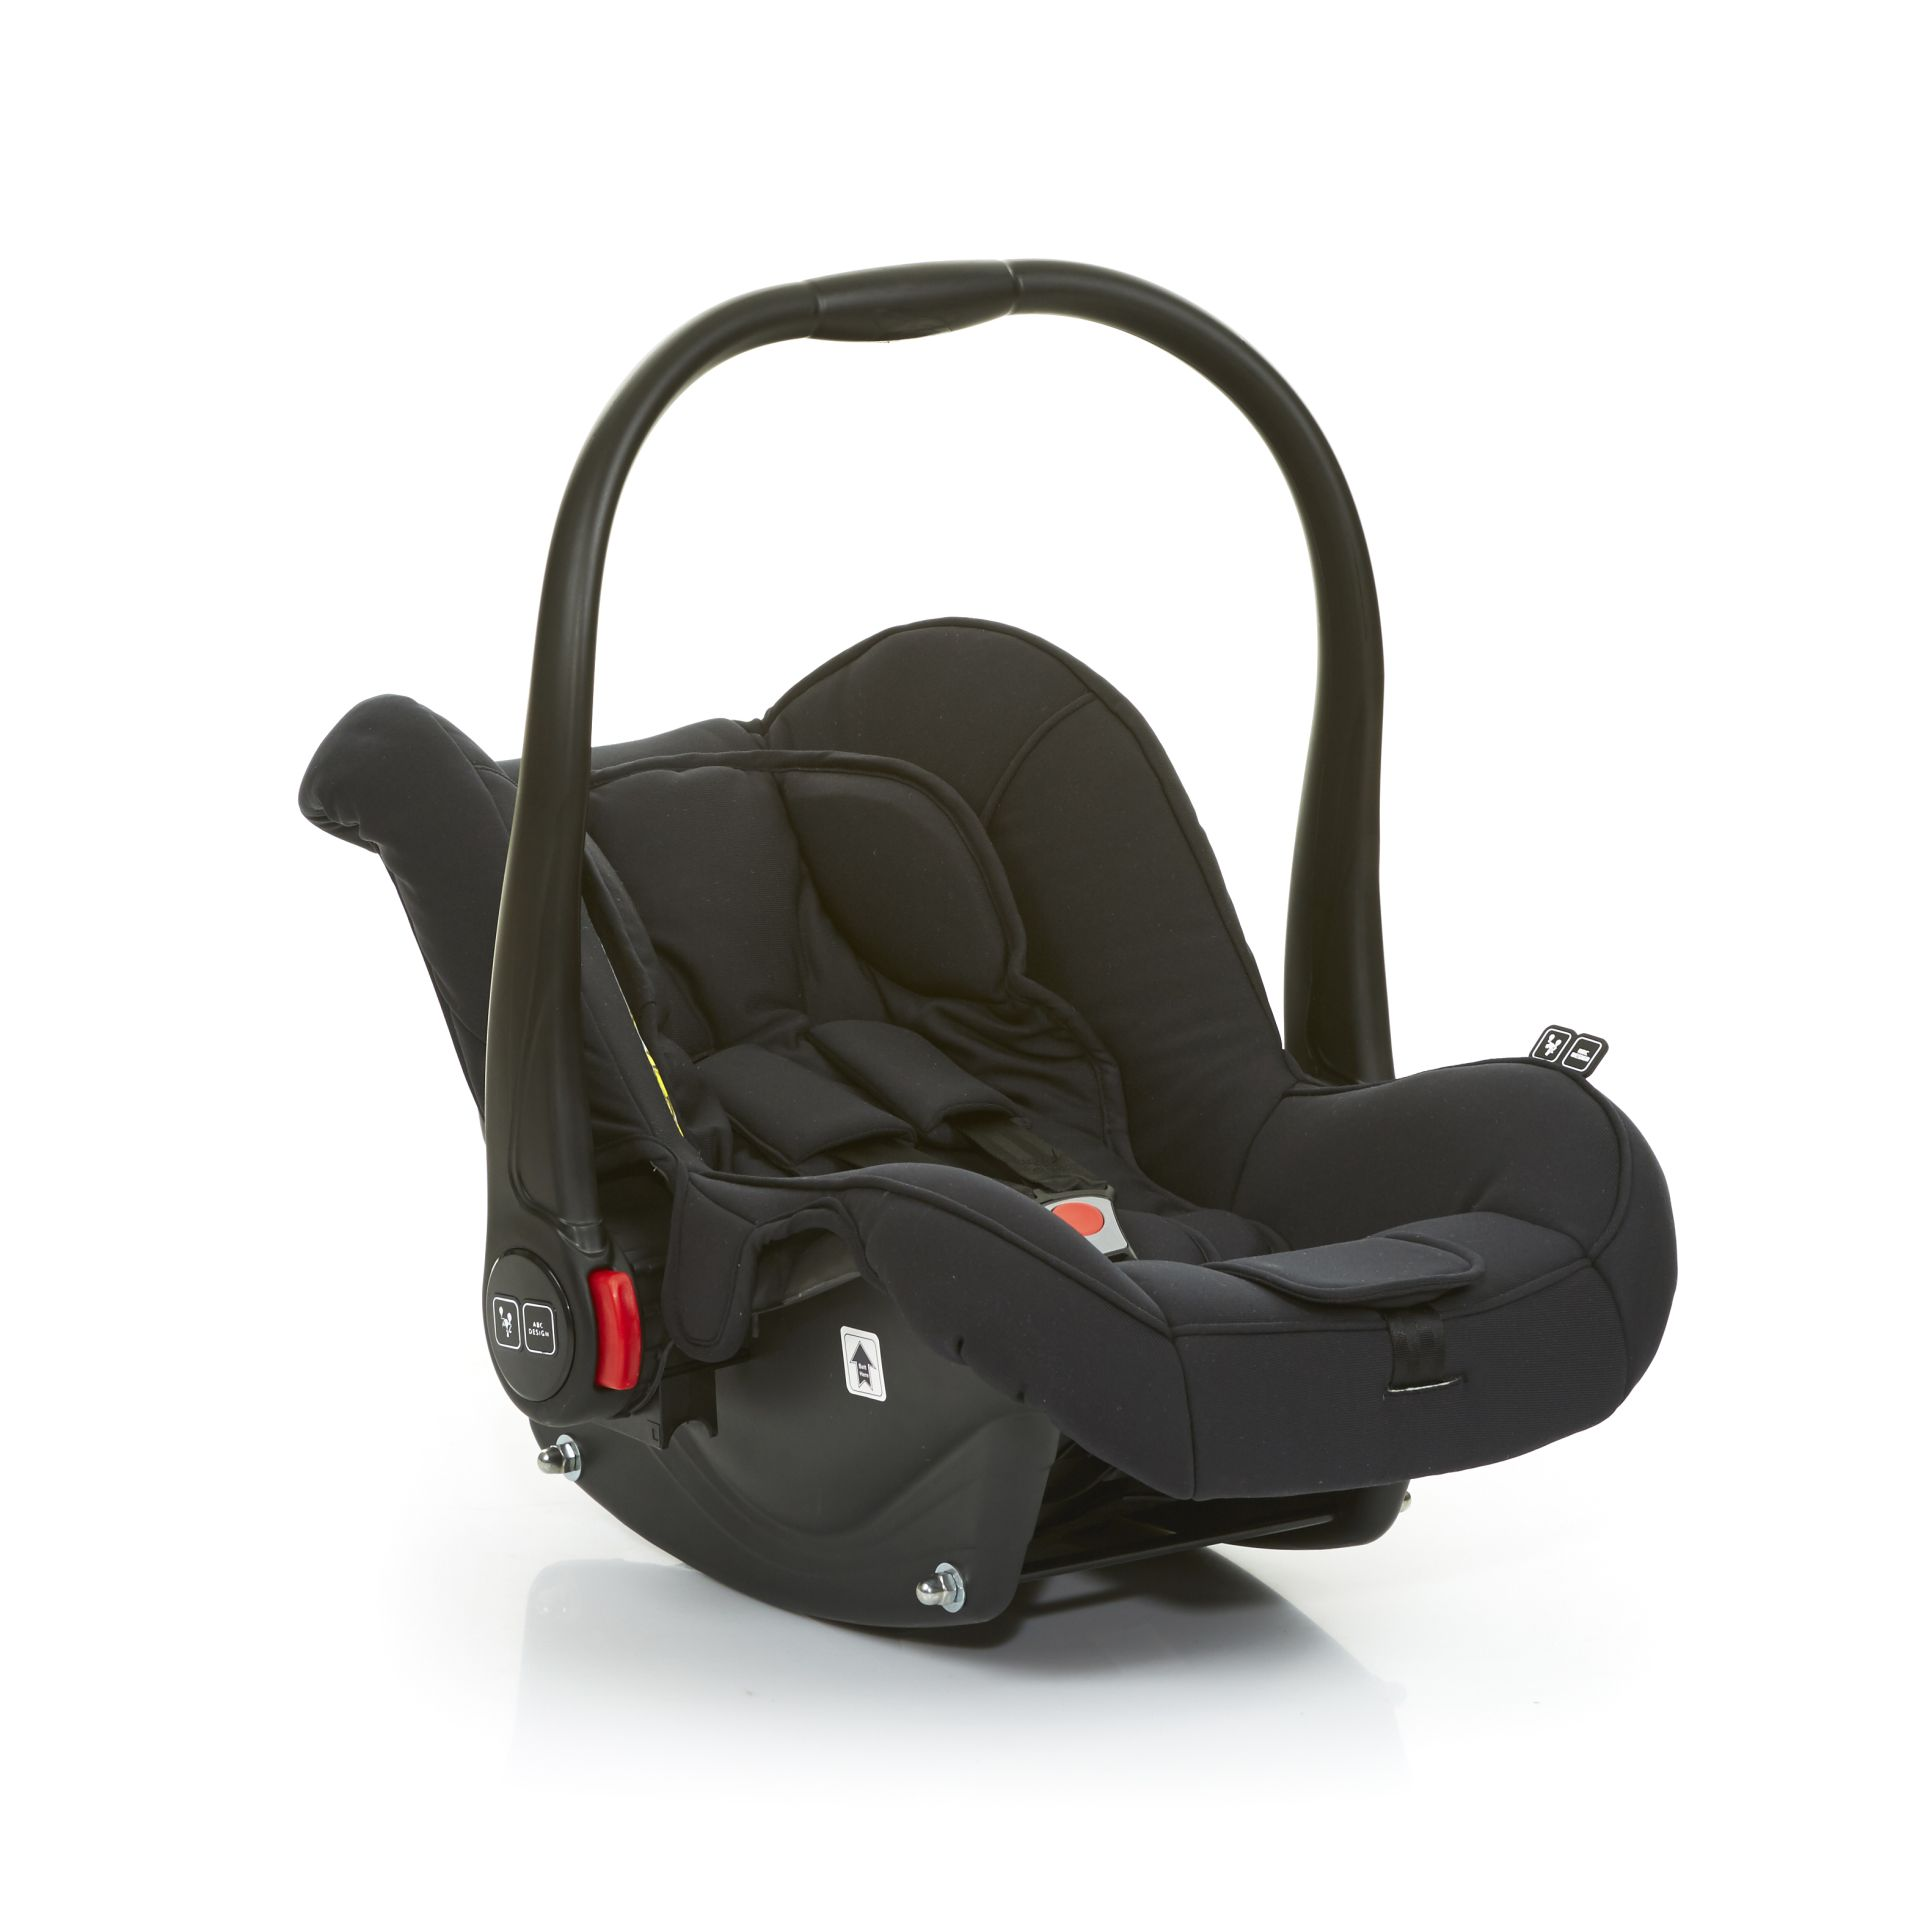 Best Car Seat For 15 Month Old Anatomy Of A Car Seat Photo